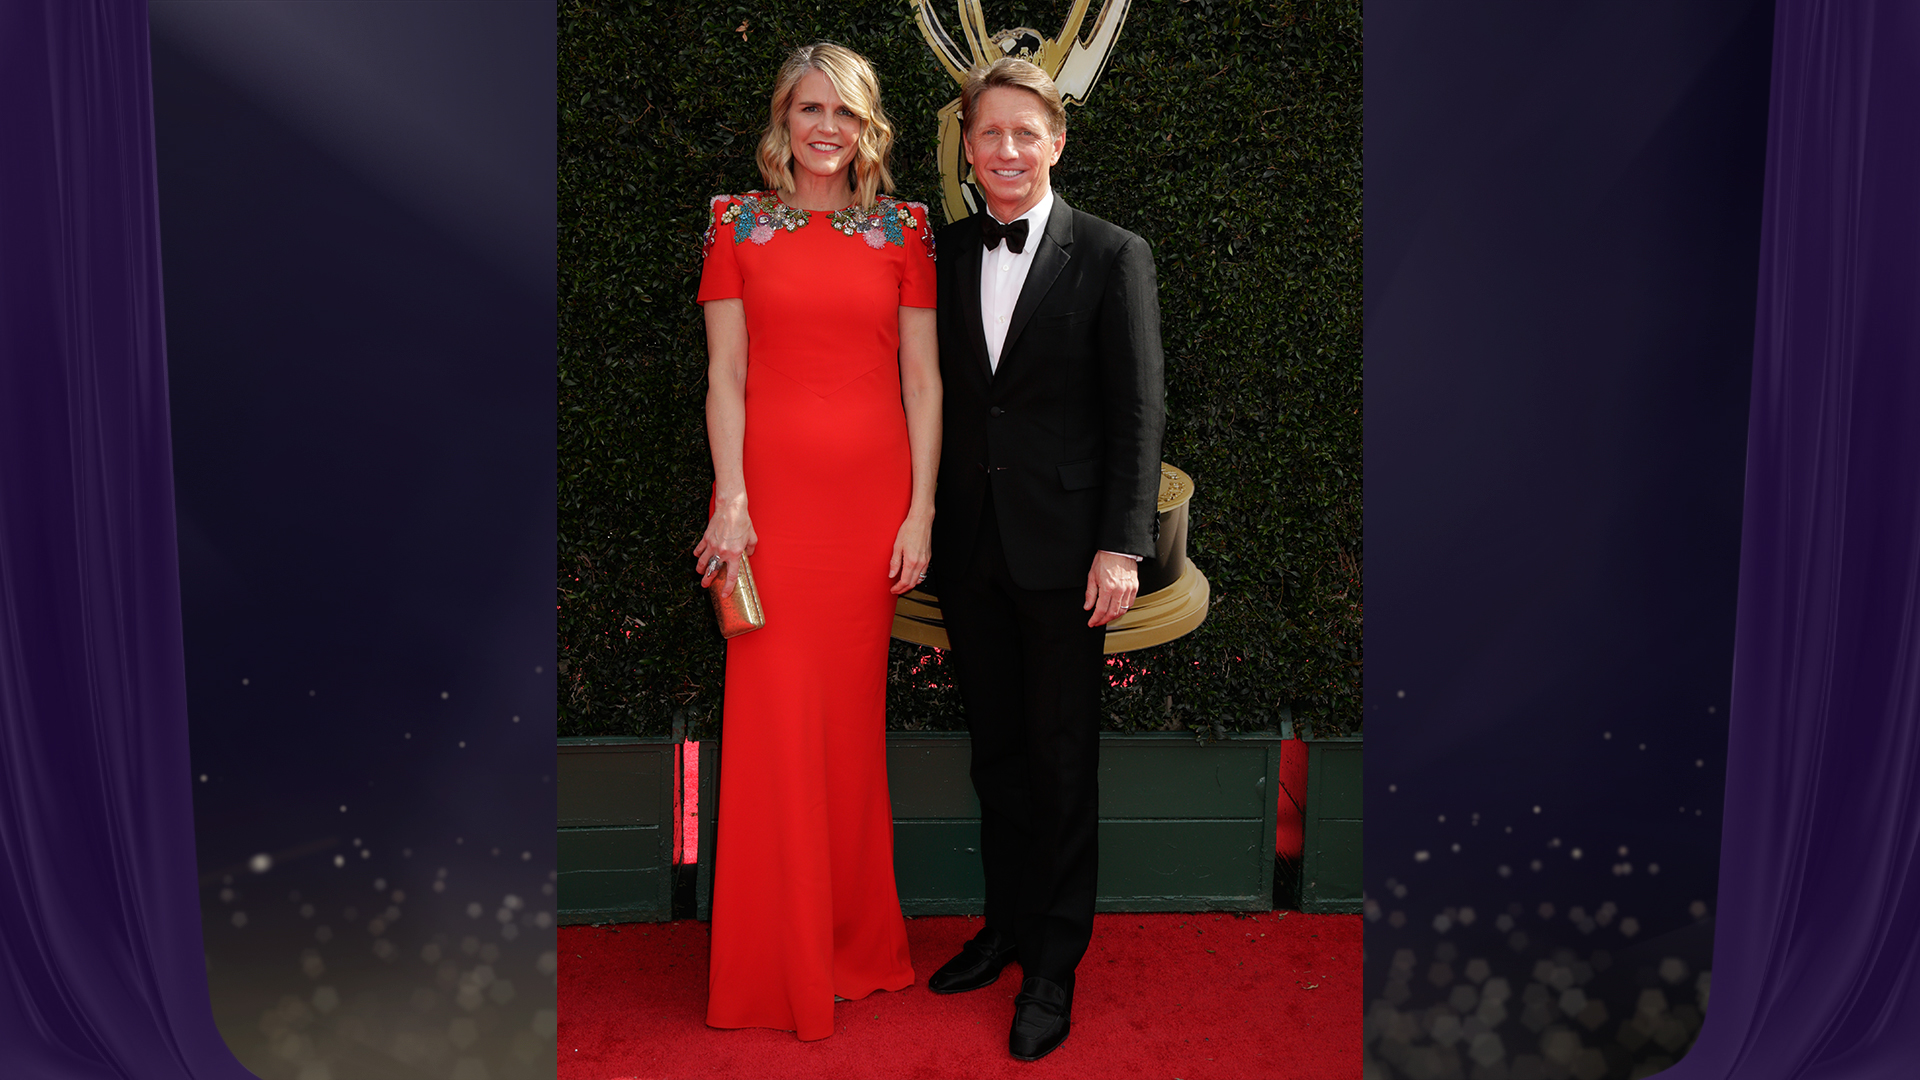 Bradley Bell, Executive Producer and head writer for The Bold and the Beautiful, poses with his wife on the Daytime Emmy red carpet.